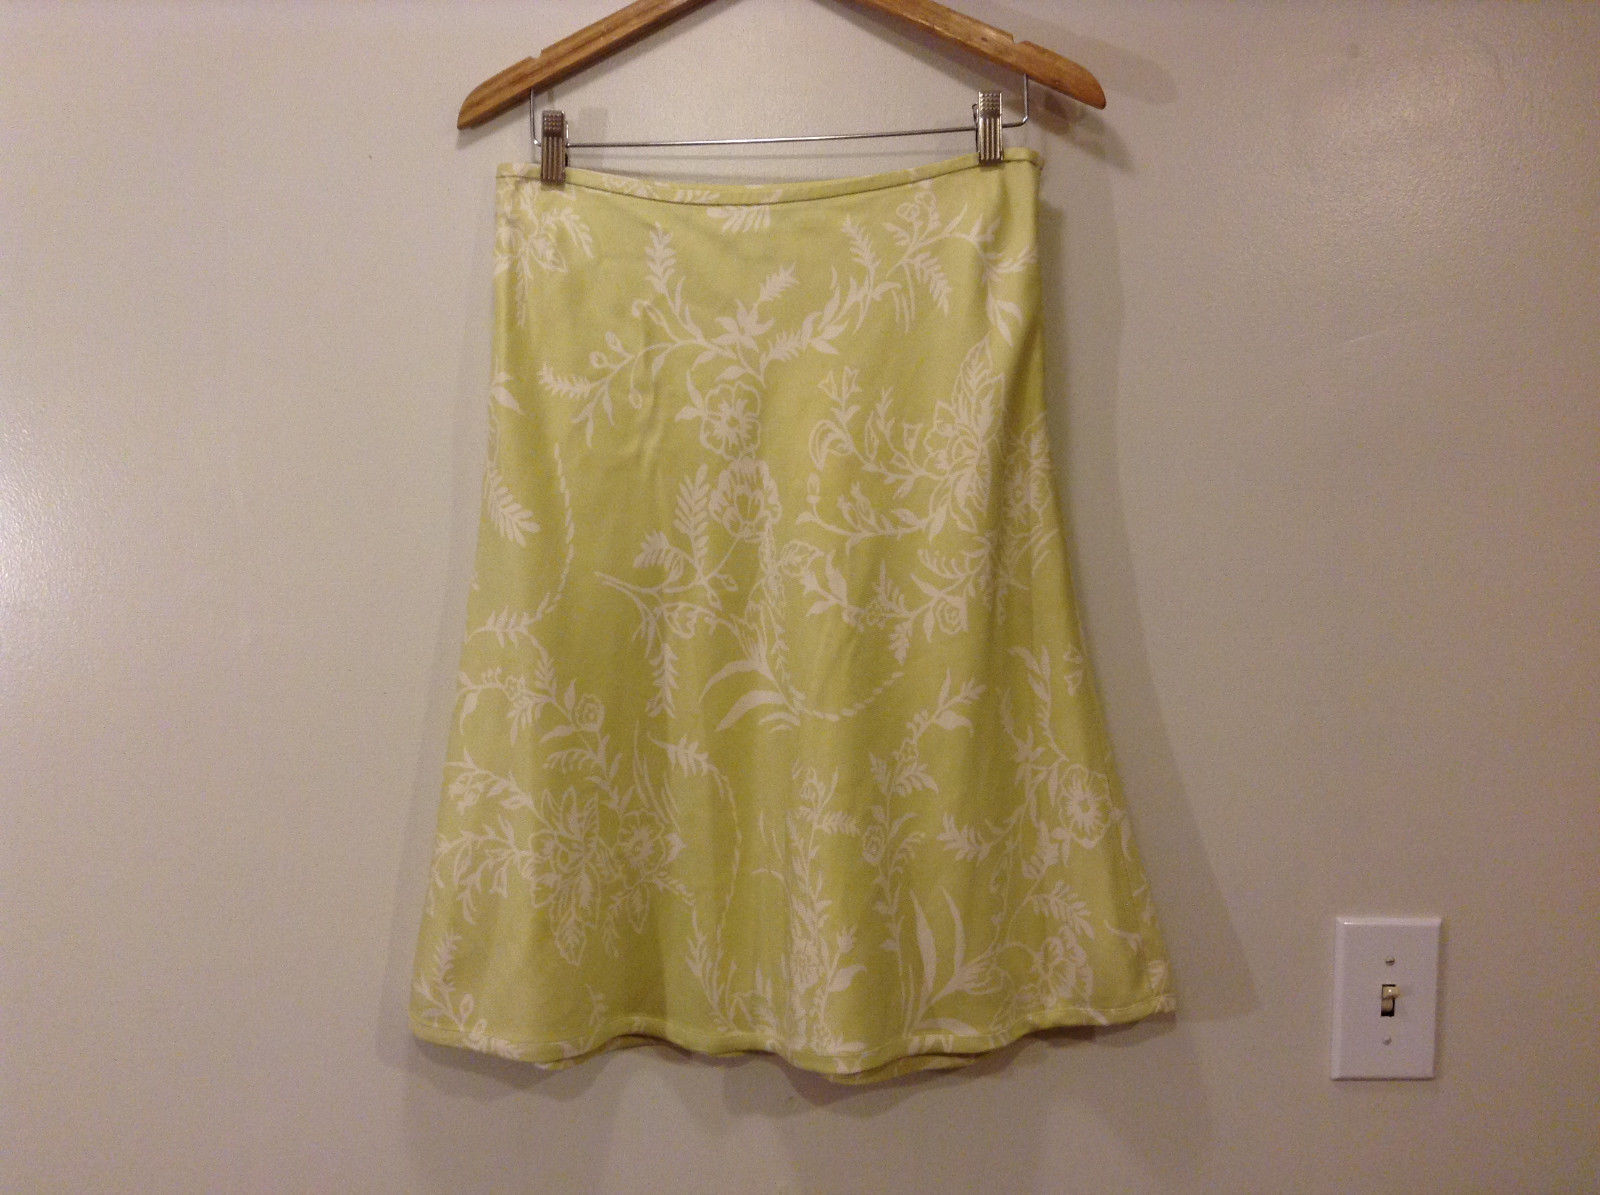 Ann Taylor Women's Size 8 Silk Skater Skirt Baroque Floral Print Yellow Green